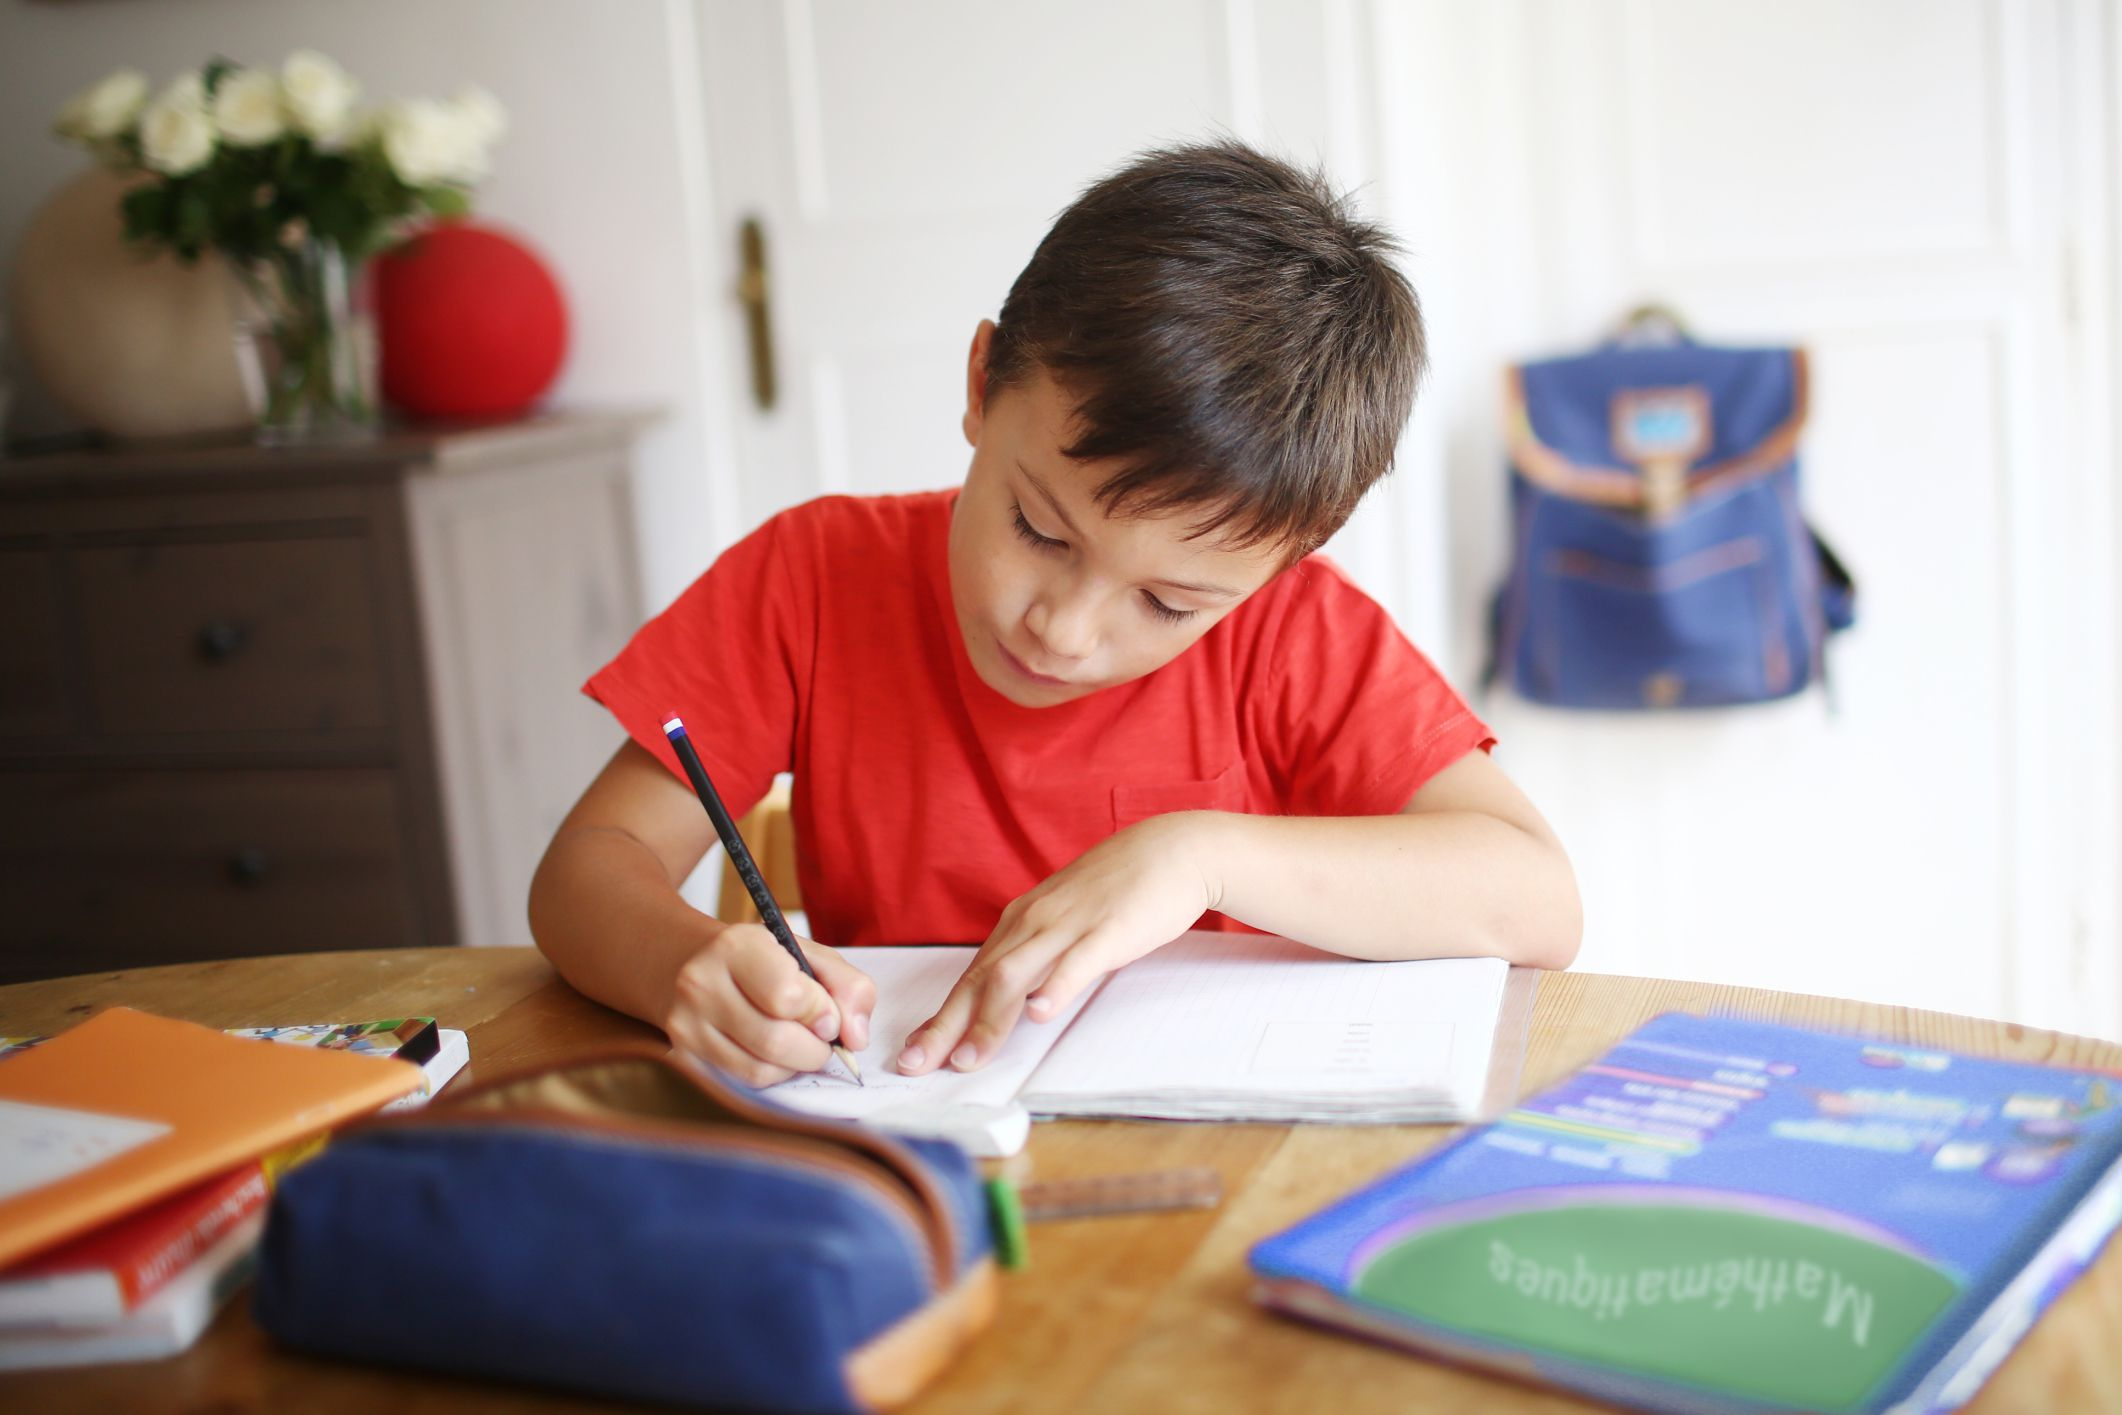 Strategies for Teachers   Dyslexia Help at the University of Michigan Mathlanding Parenting Help With Homework Strategies To Help Kids Homework Affairs Ways  to Help Your Kids Domov